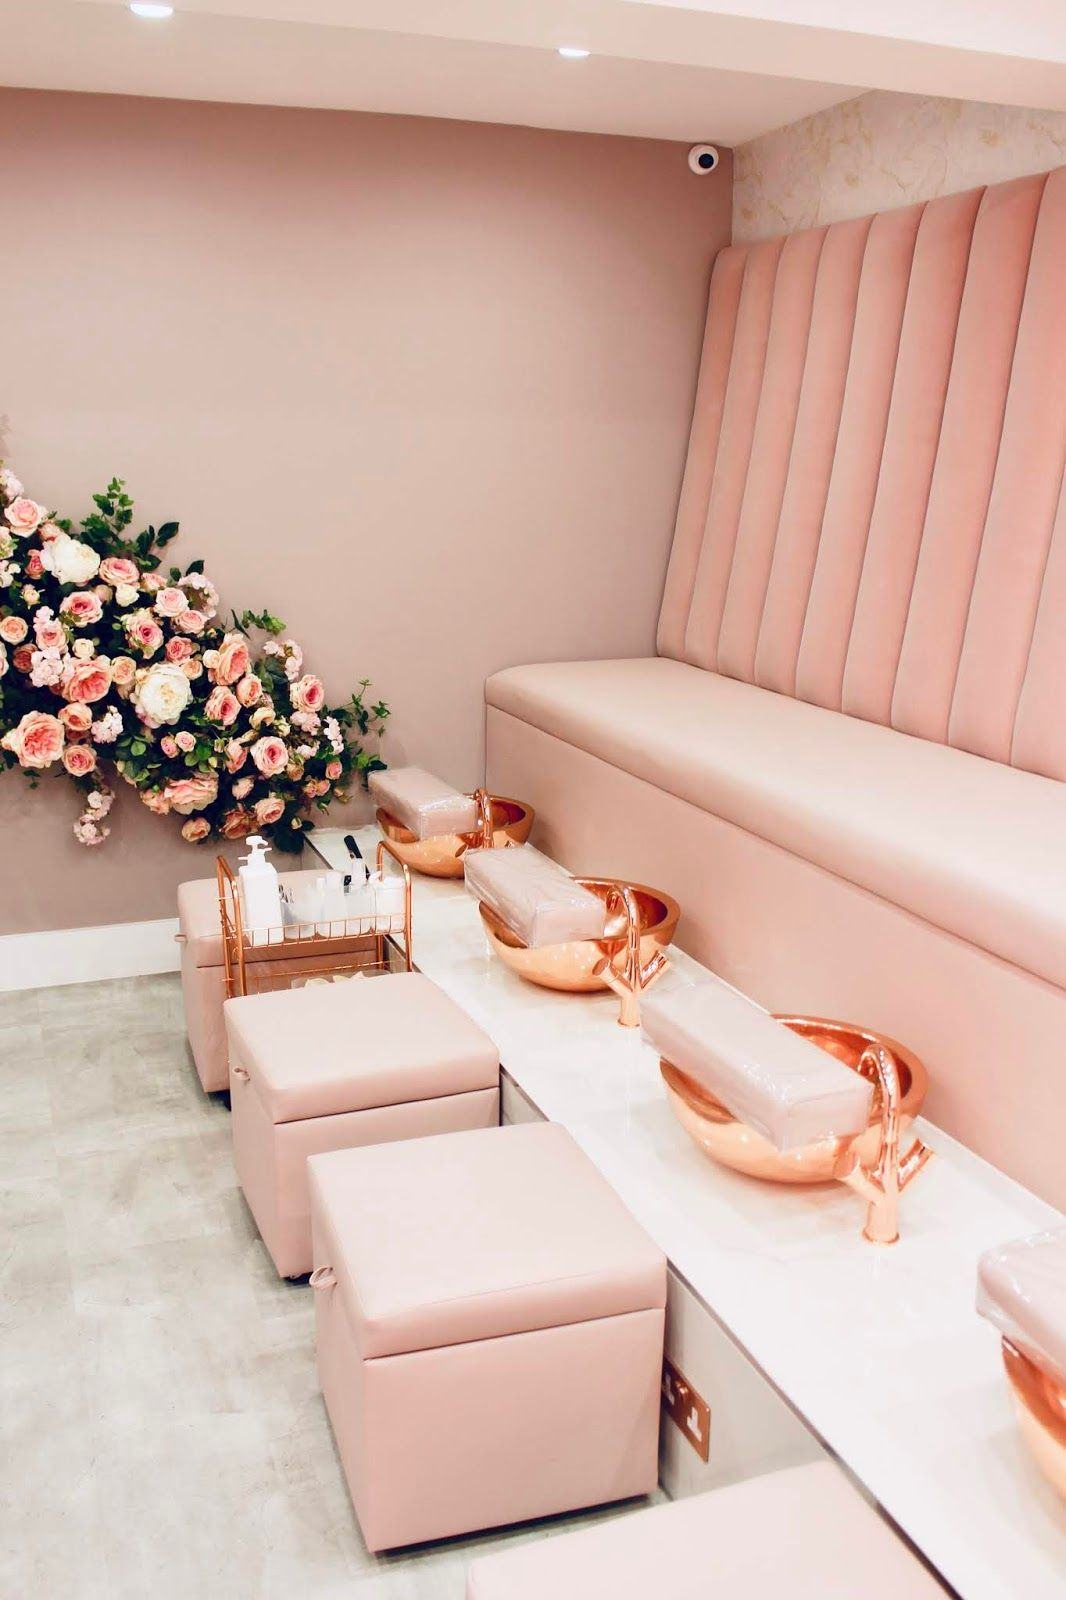 The Most Instagrammable Nail Salon We Nail D It Review Con